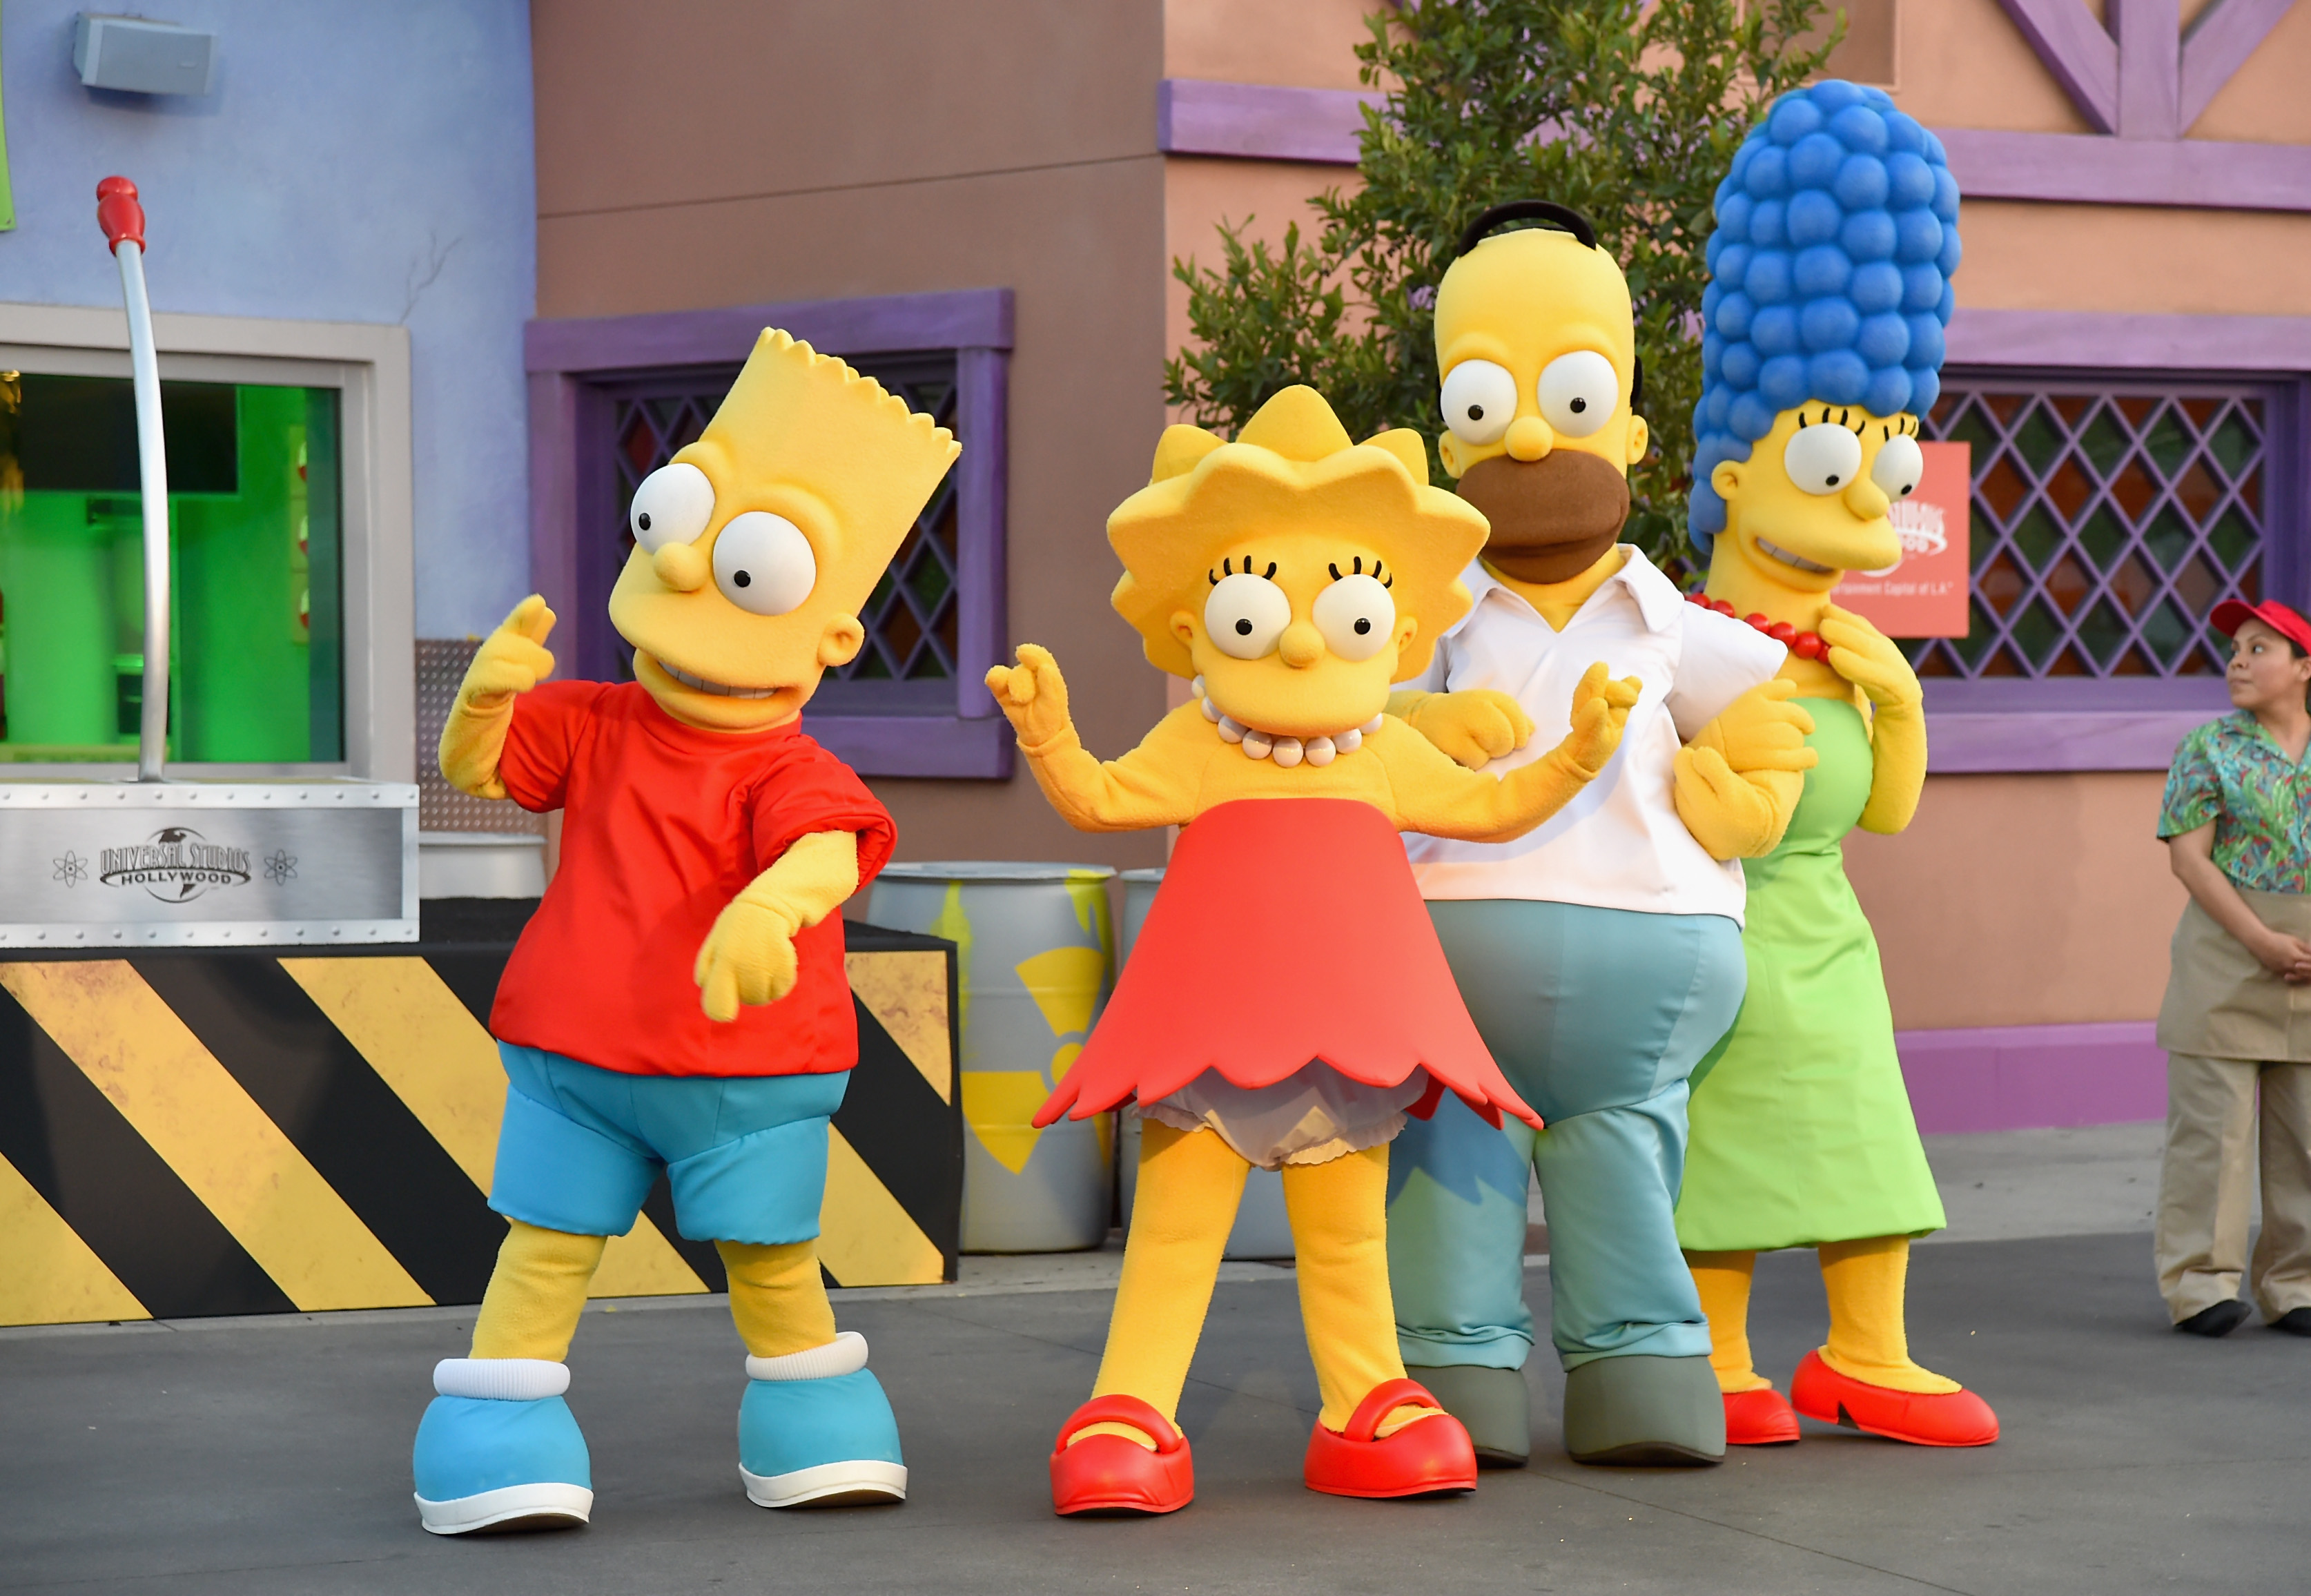 UNIVERSAL CITY, CA - MAY 12: The Simpsons attend the 'Taste of Springfield' press event at Universal Studios Hollywood on May 12, 2015 in Universal City, California.